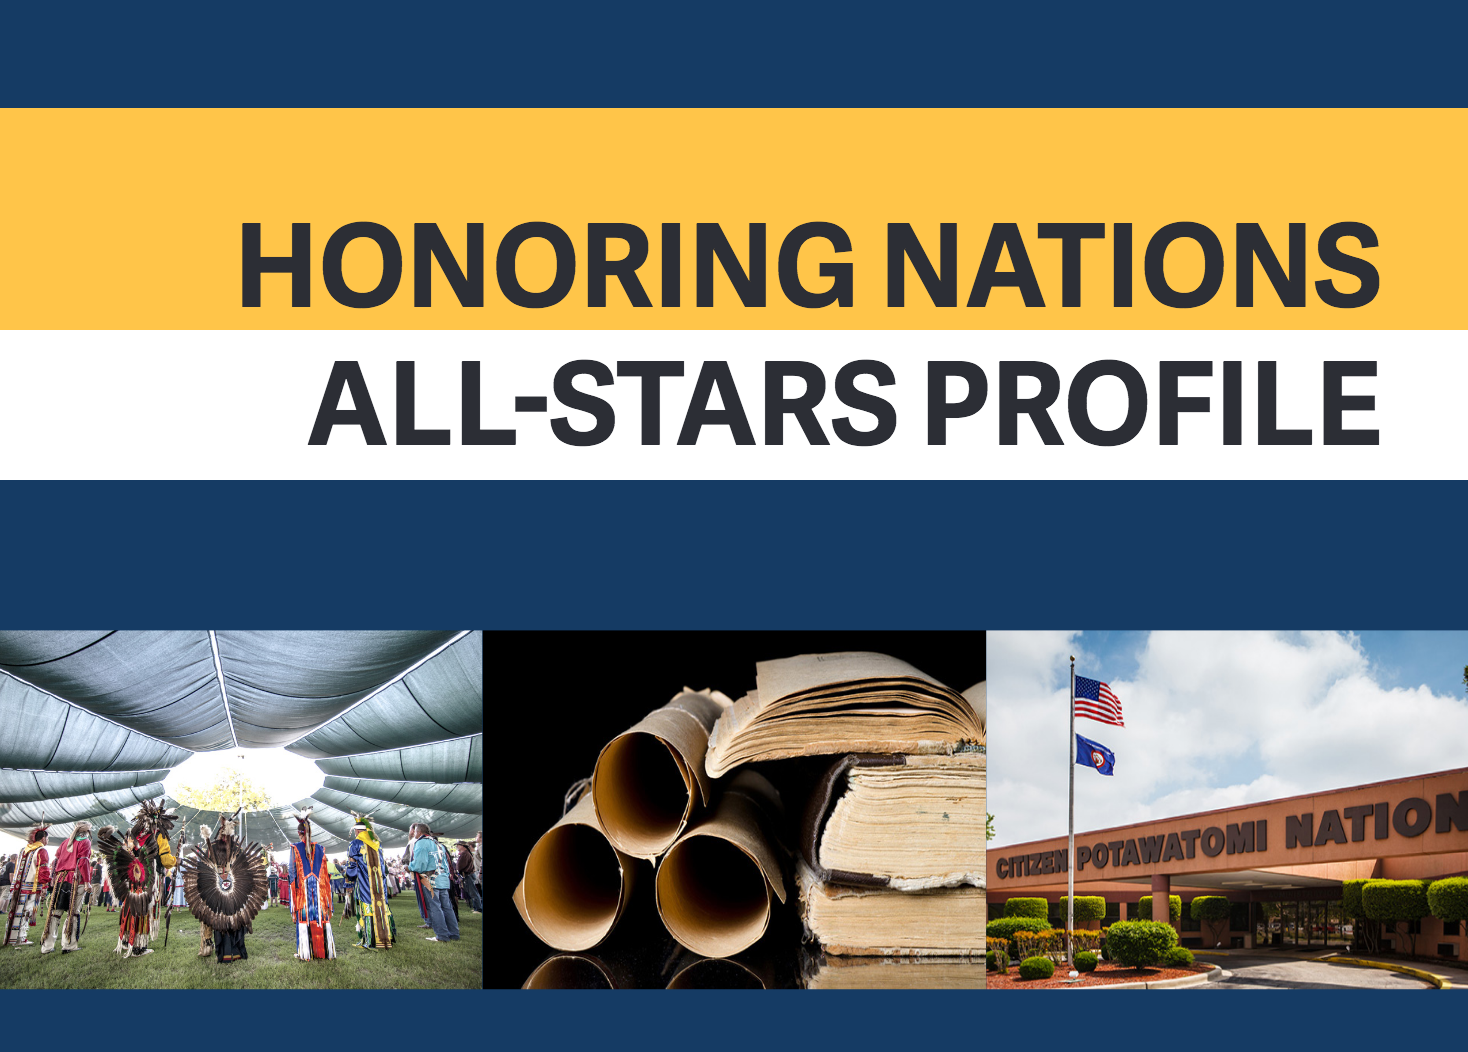 HONORING NATIONS ALL-STARS PROFILE: Constitutional Reform Citizen Potawatomi Nation